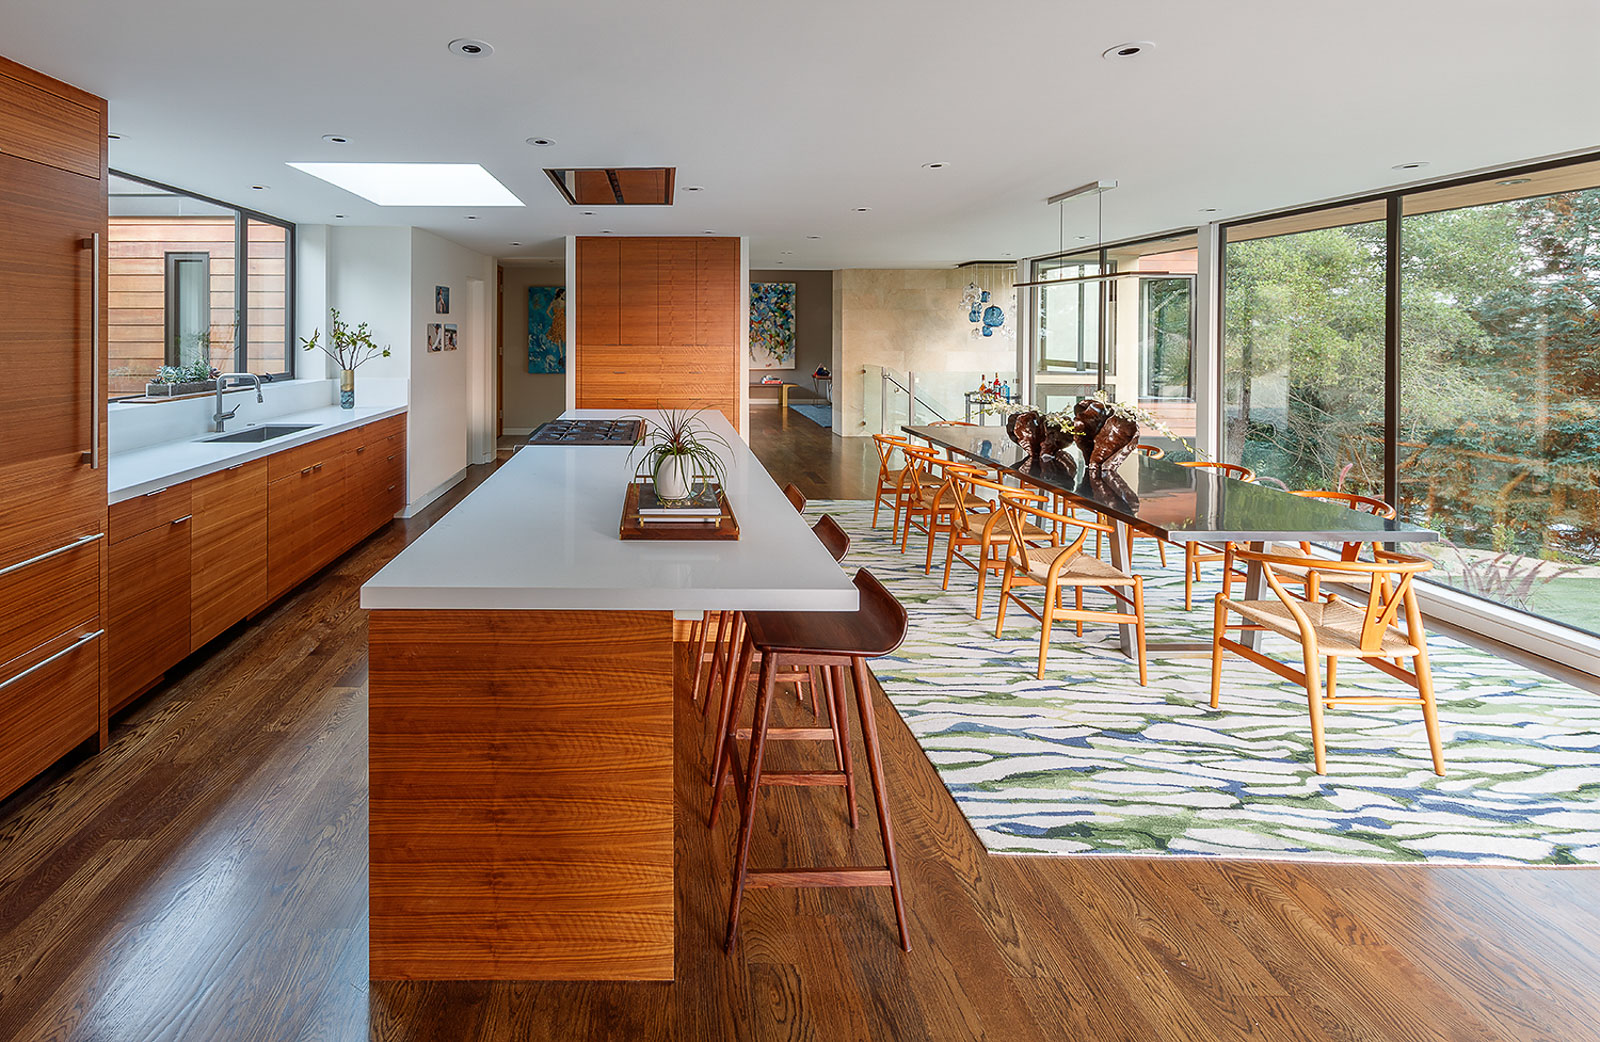 Mid century modern interior design kitchen from award-winning interior designer.